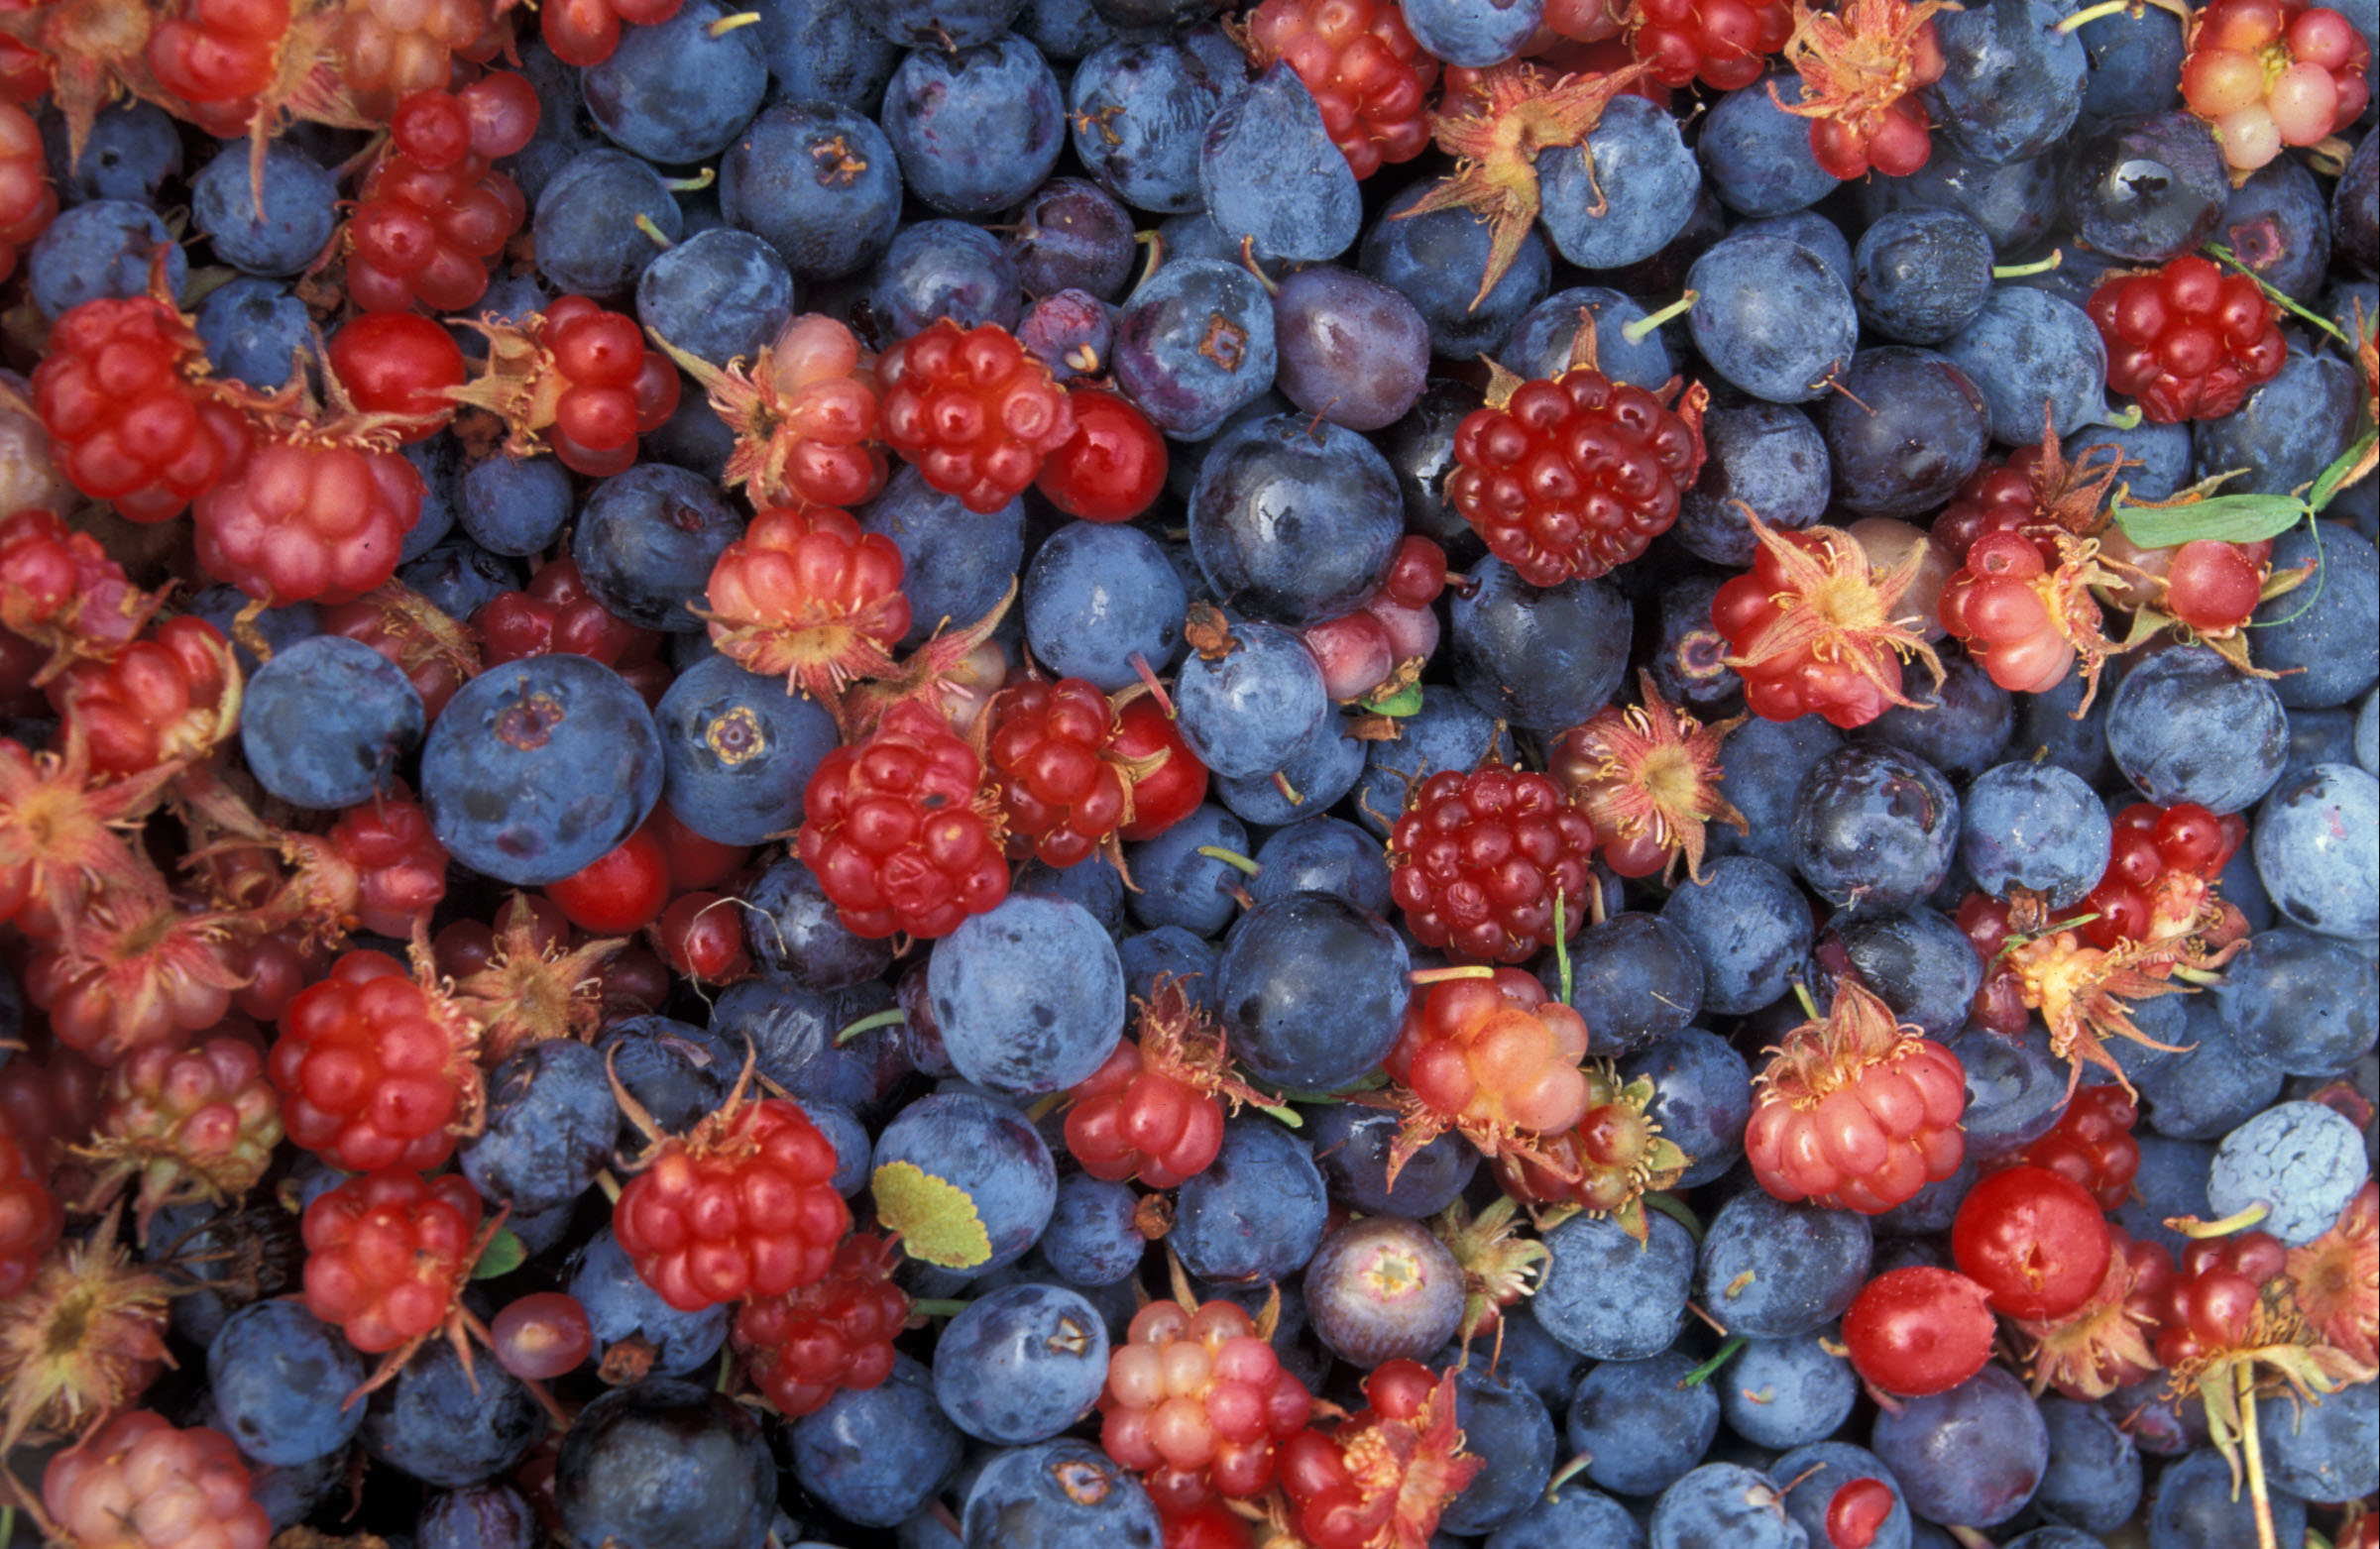 Berries - Nature's candy!